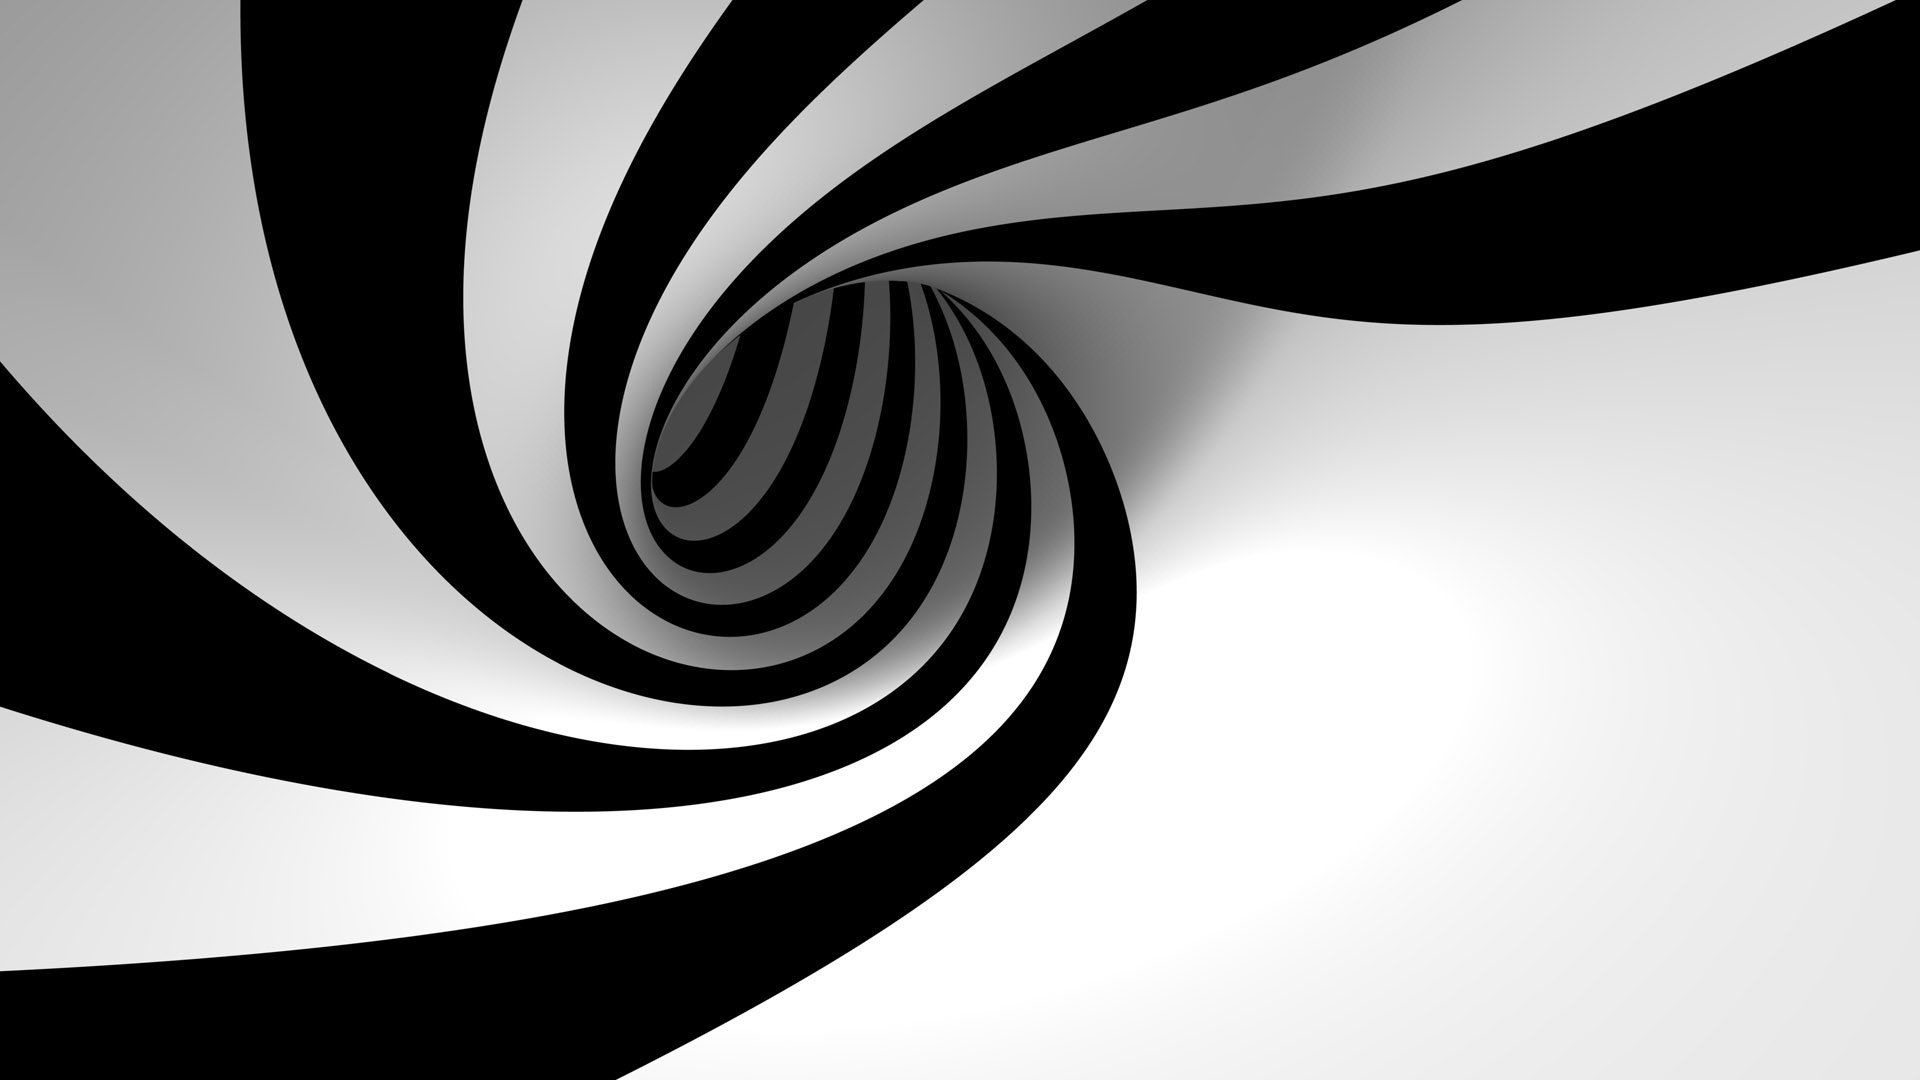 Rabbit Hole Vortex For Front Of Venue Black And White Abstract